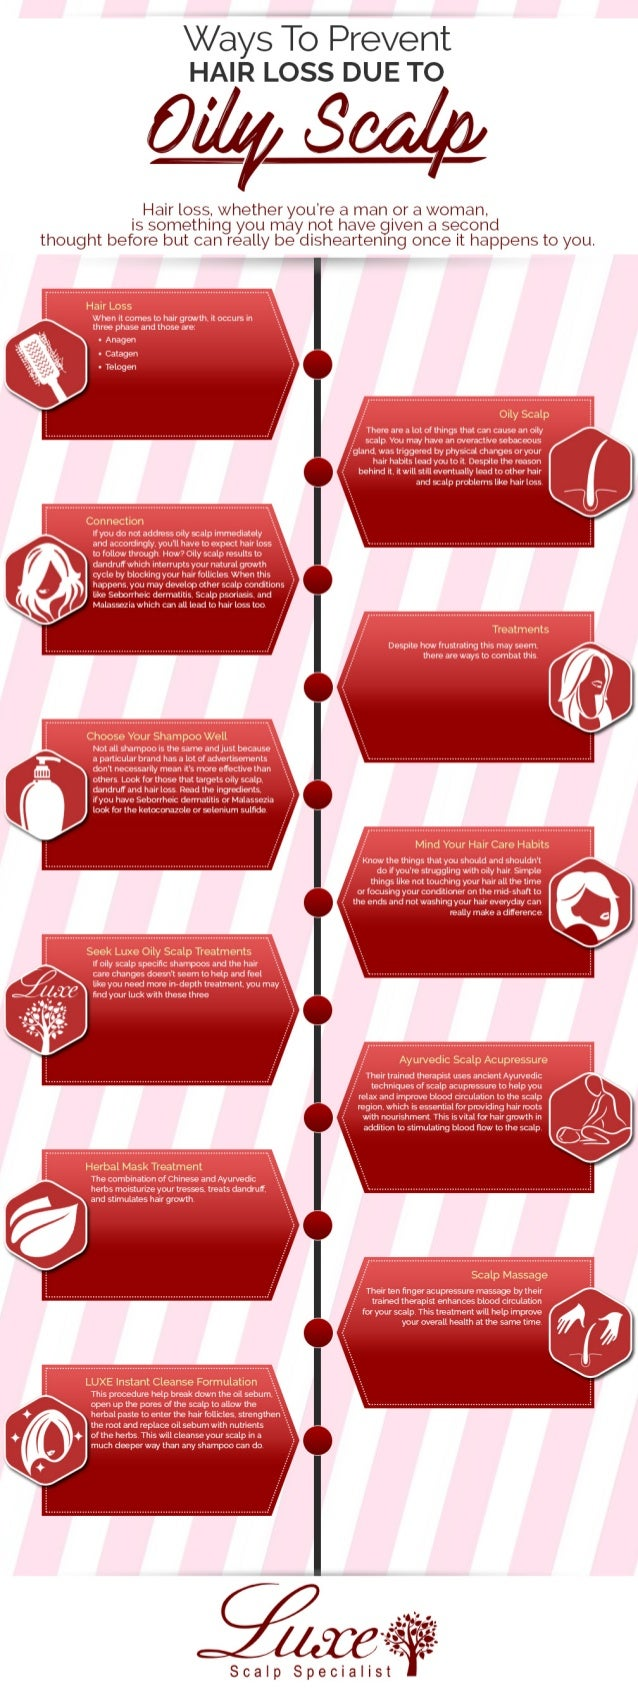 Ways To Prevent Hair Loss Due To Oily ScalpWays To Prevent Hair Loss Due To Oily Scalp